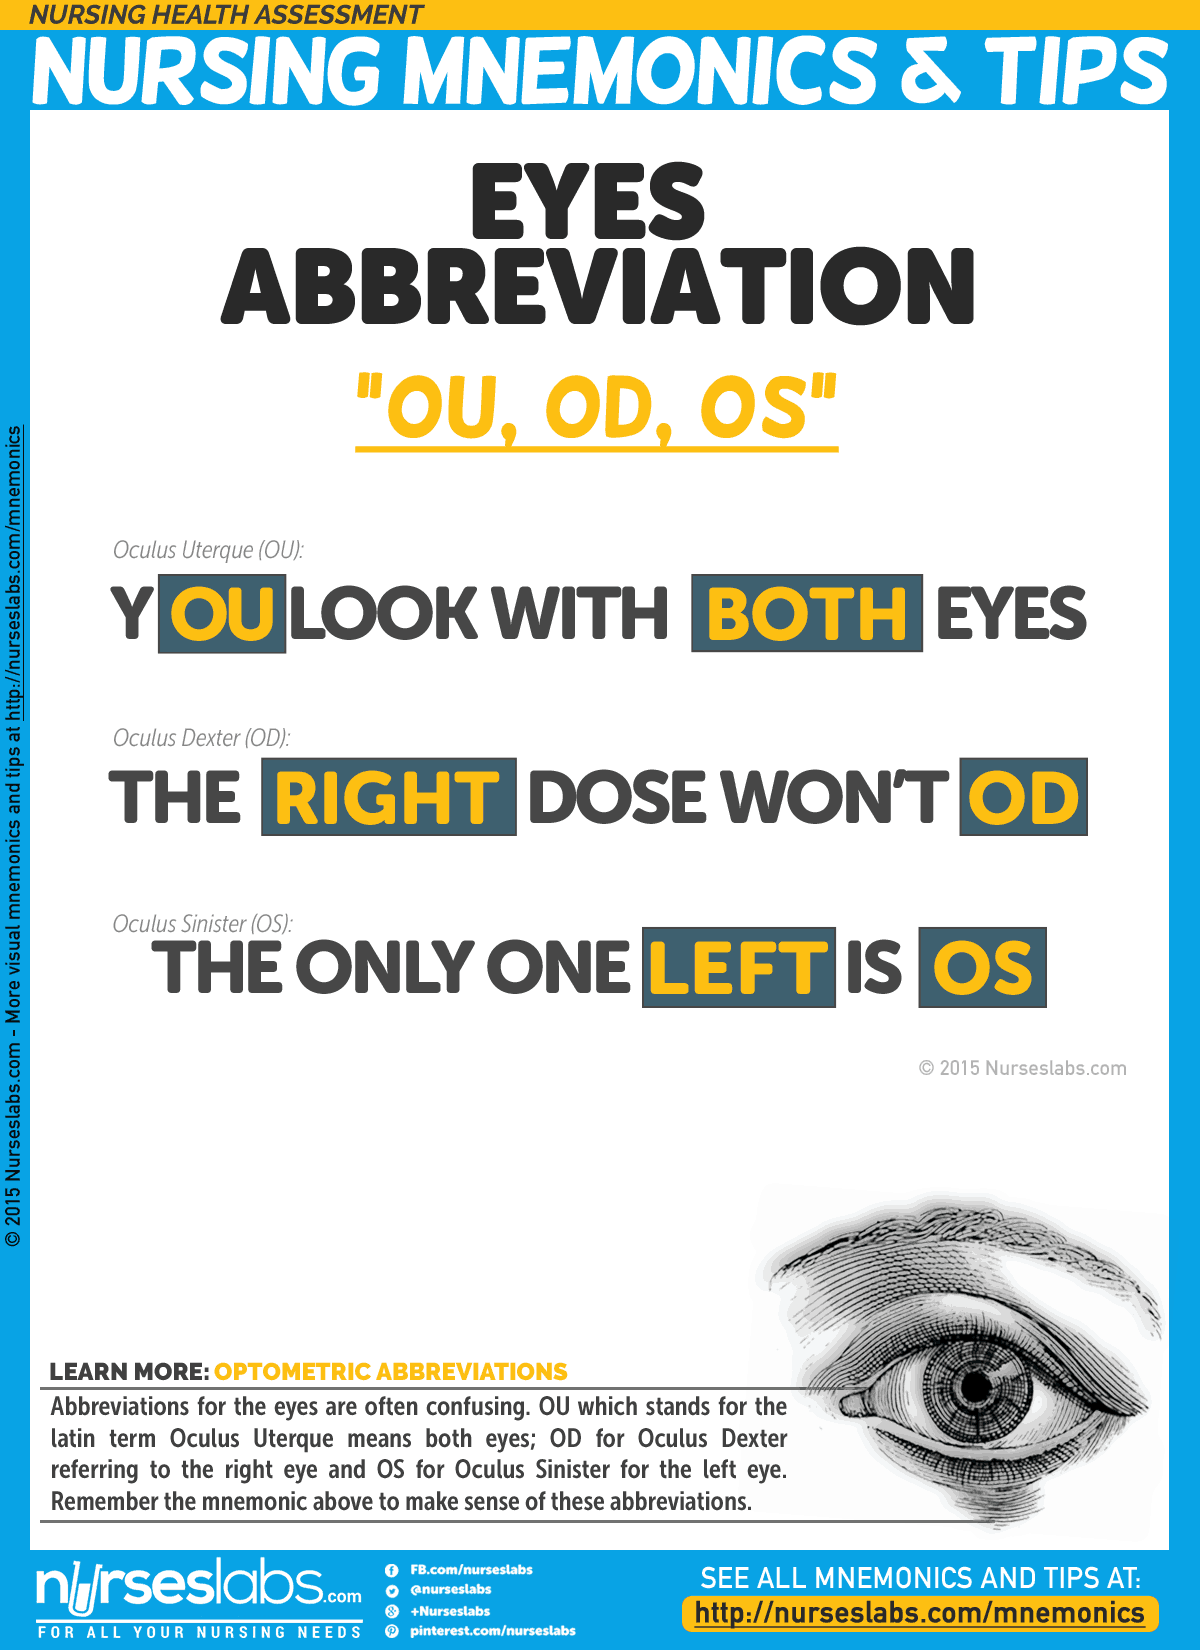 NHA-009: Eyes Abbreviation Nursing Mnemonics & Tips